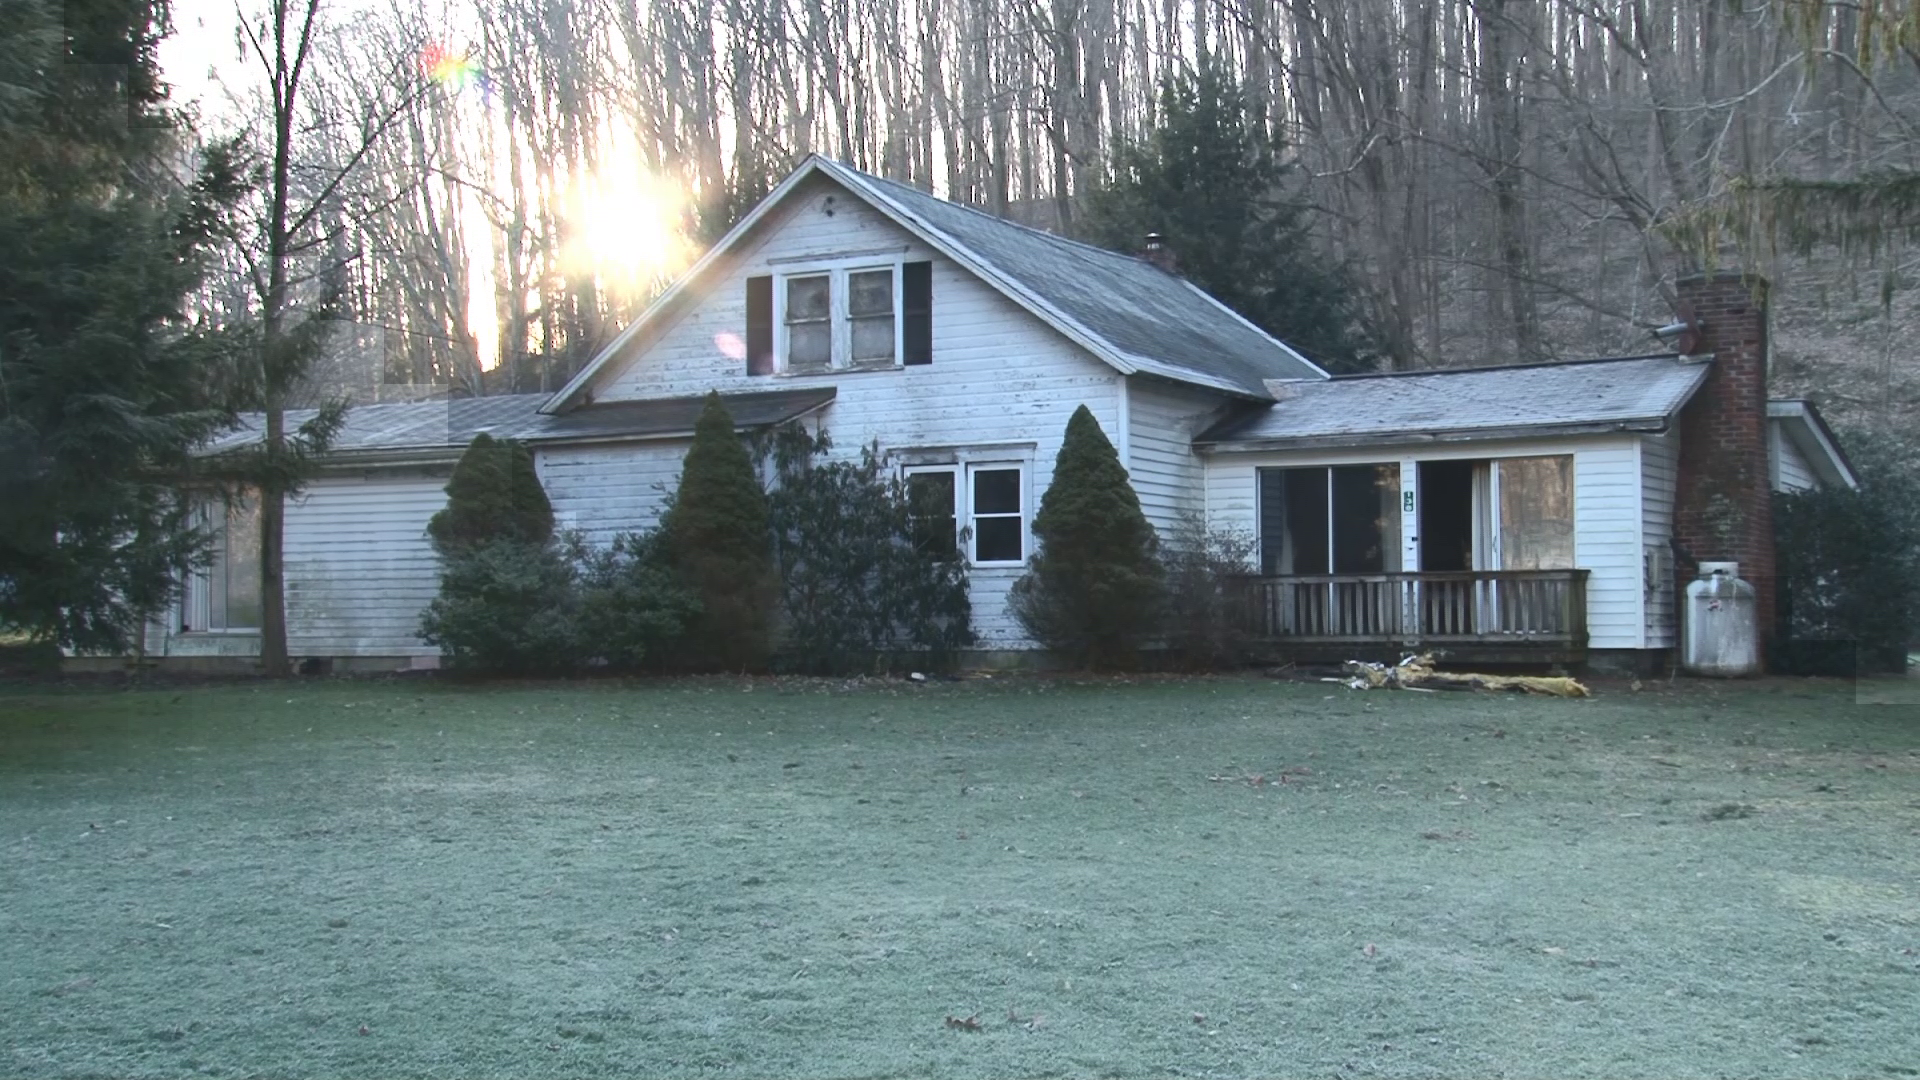 96-year-old man killed in Fayette County fire